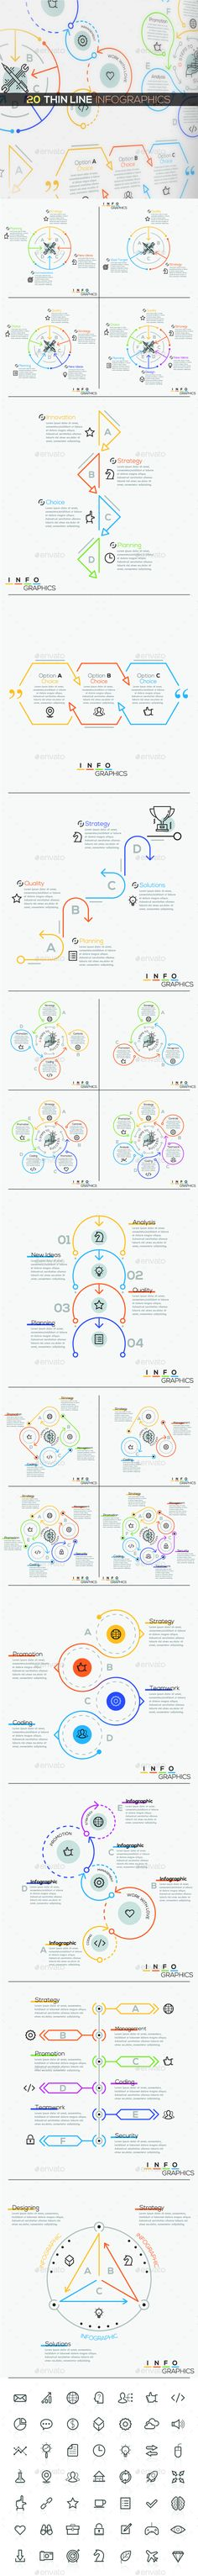 20 Thin Line Infographics  — PSD Template #information #concept • Download ➝ https://graphicriver.net/item/20-thin-line-infographics/18180778?ref=pxcr